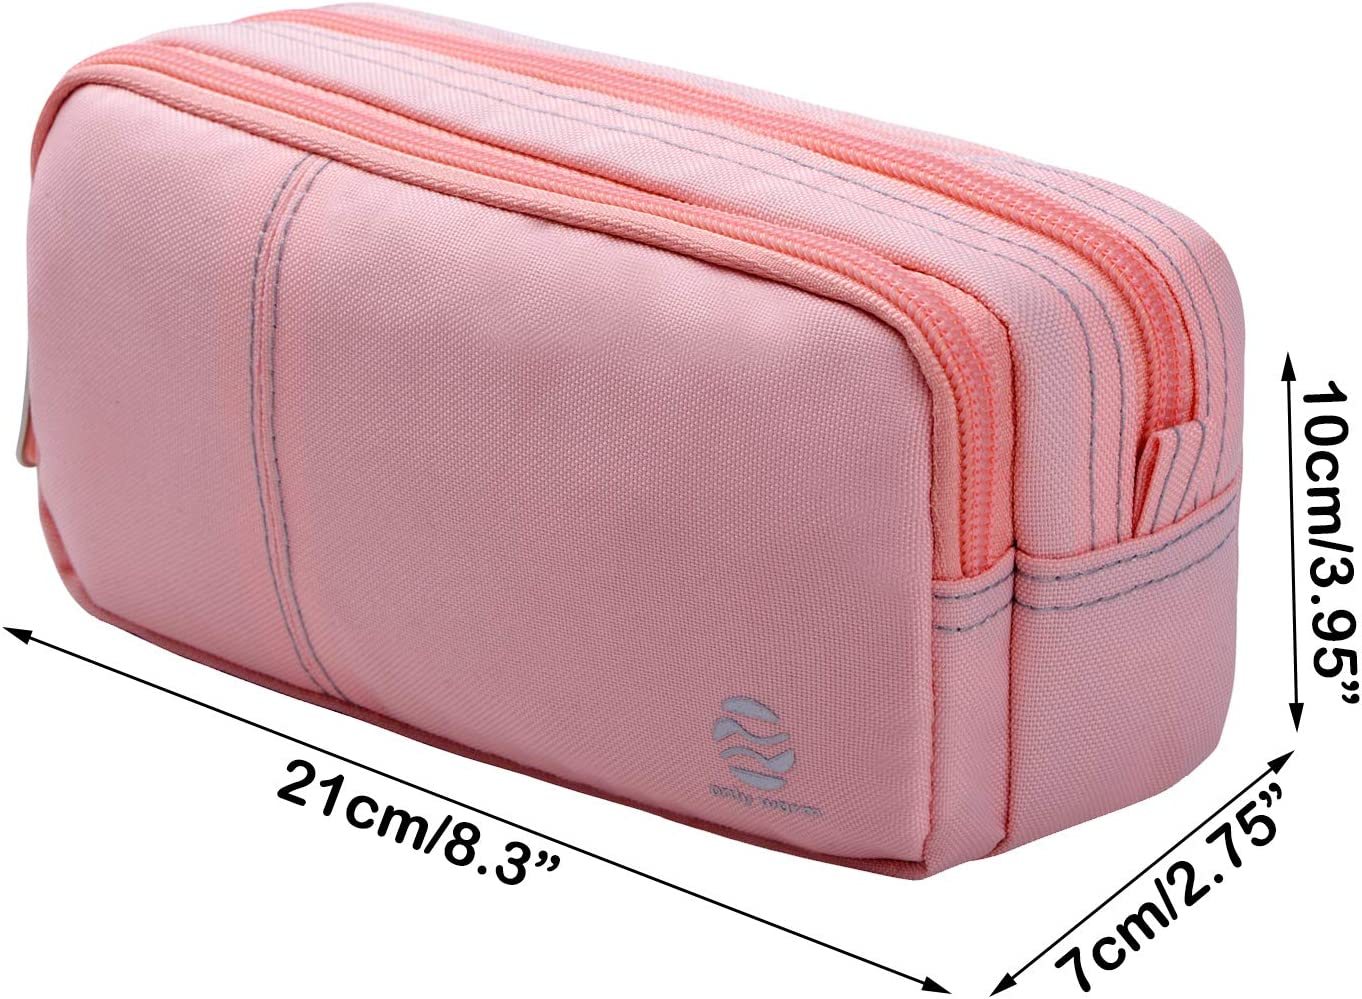 Large Pencil Case Organization Storage Big Capacity Storage Pen Bag Pouch Holder Maker Stationery Organizer with Durable Zippers for Middle High School College Student Girls Boys Adult